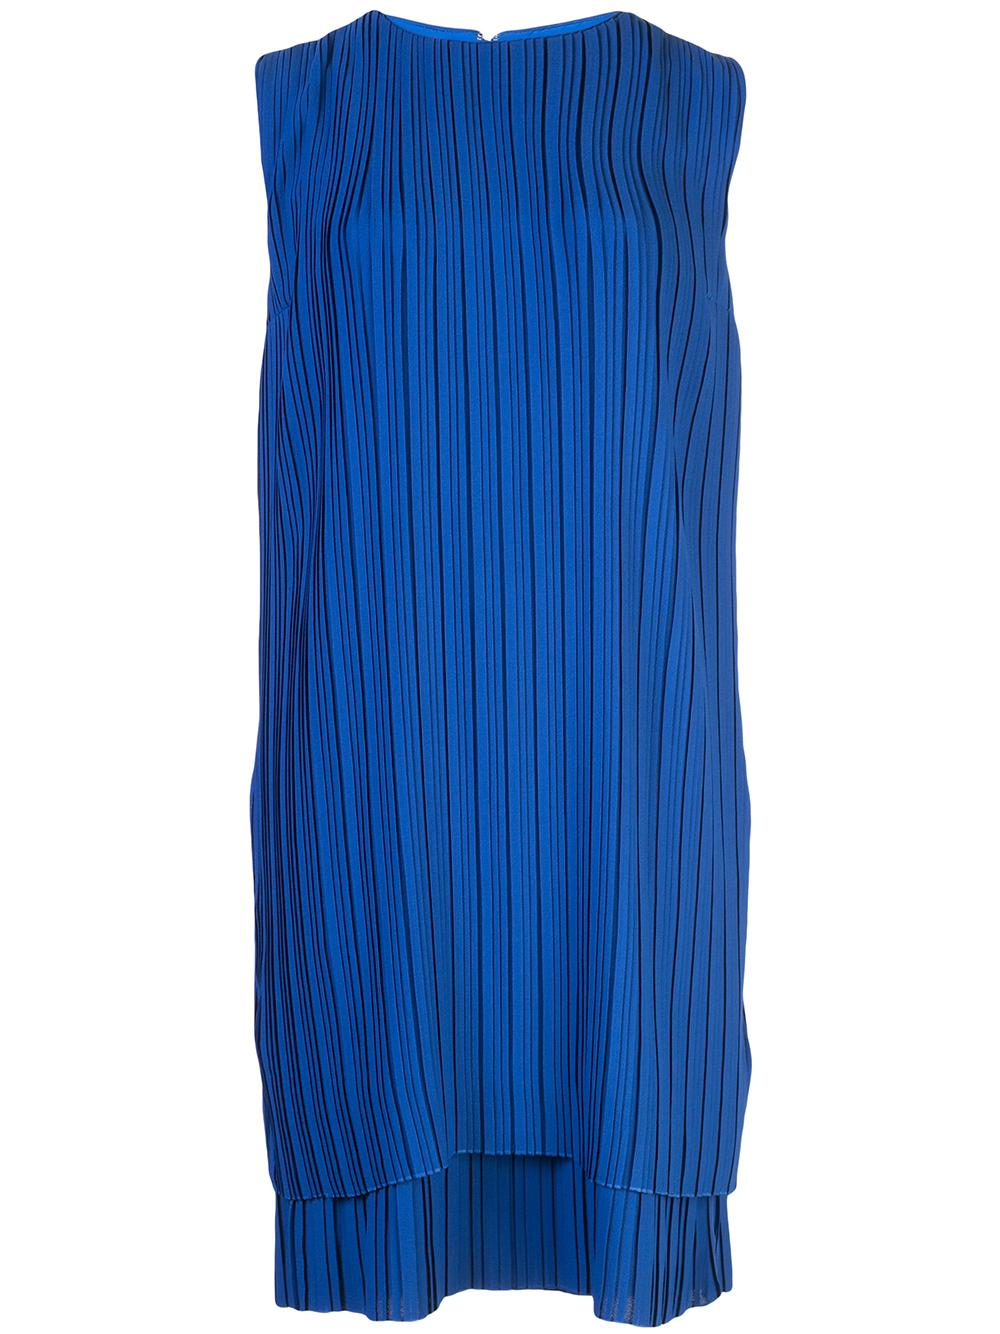 Sleeveless All Pleated Crepe Shift Dress Item # DRVV660-PAW19